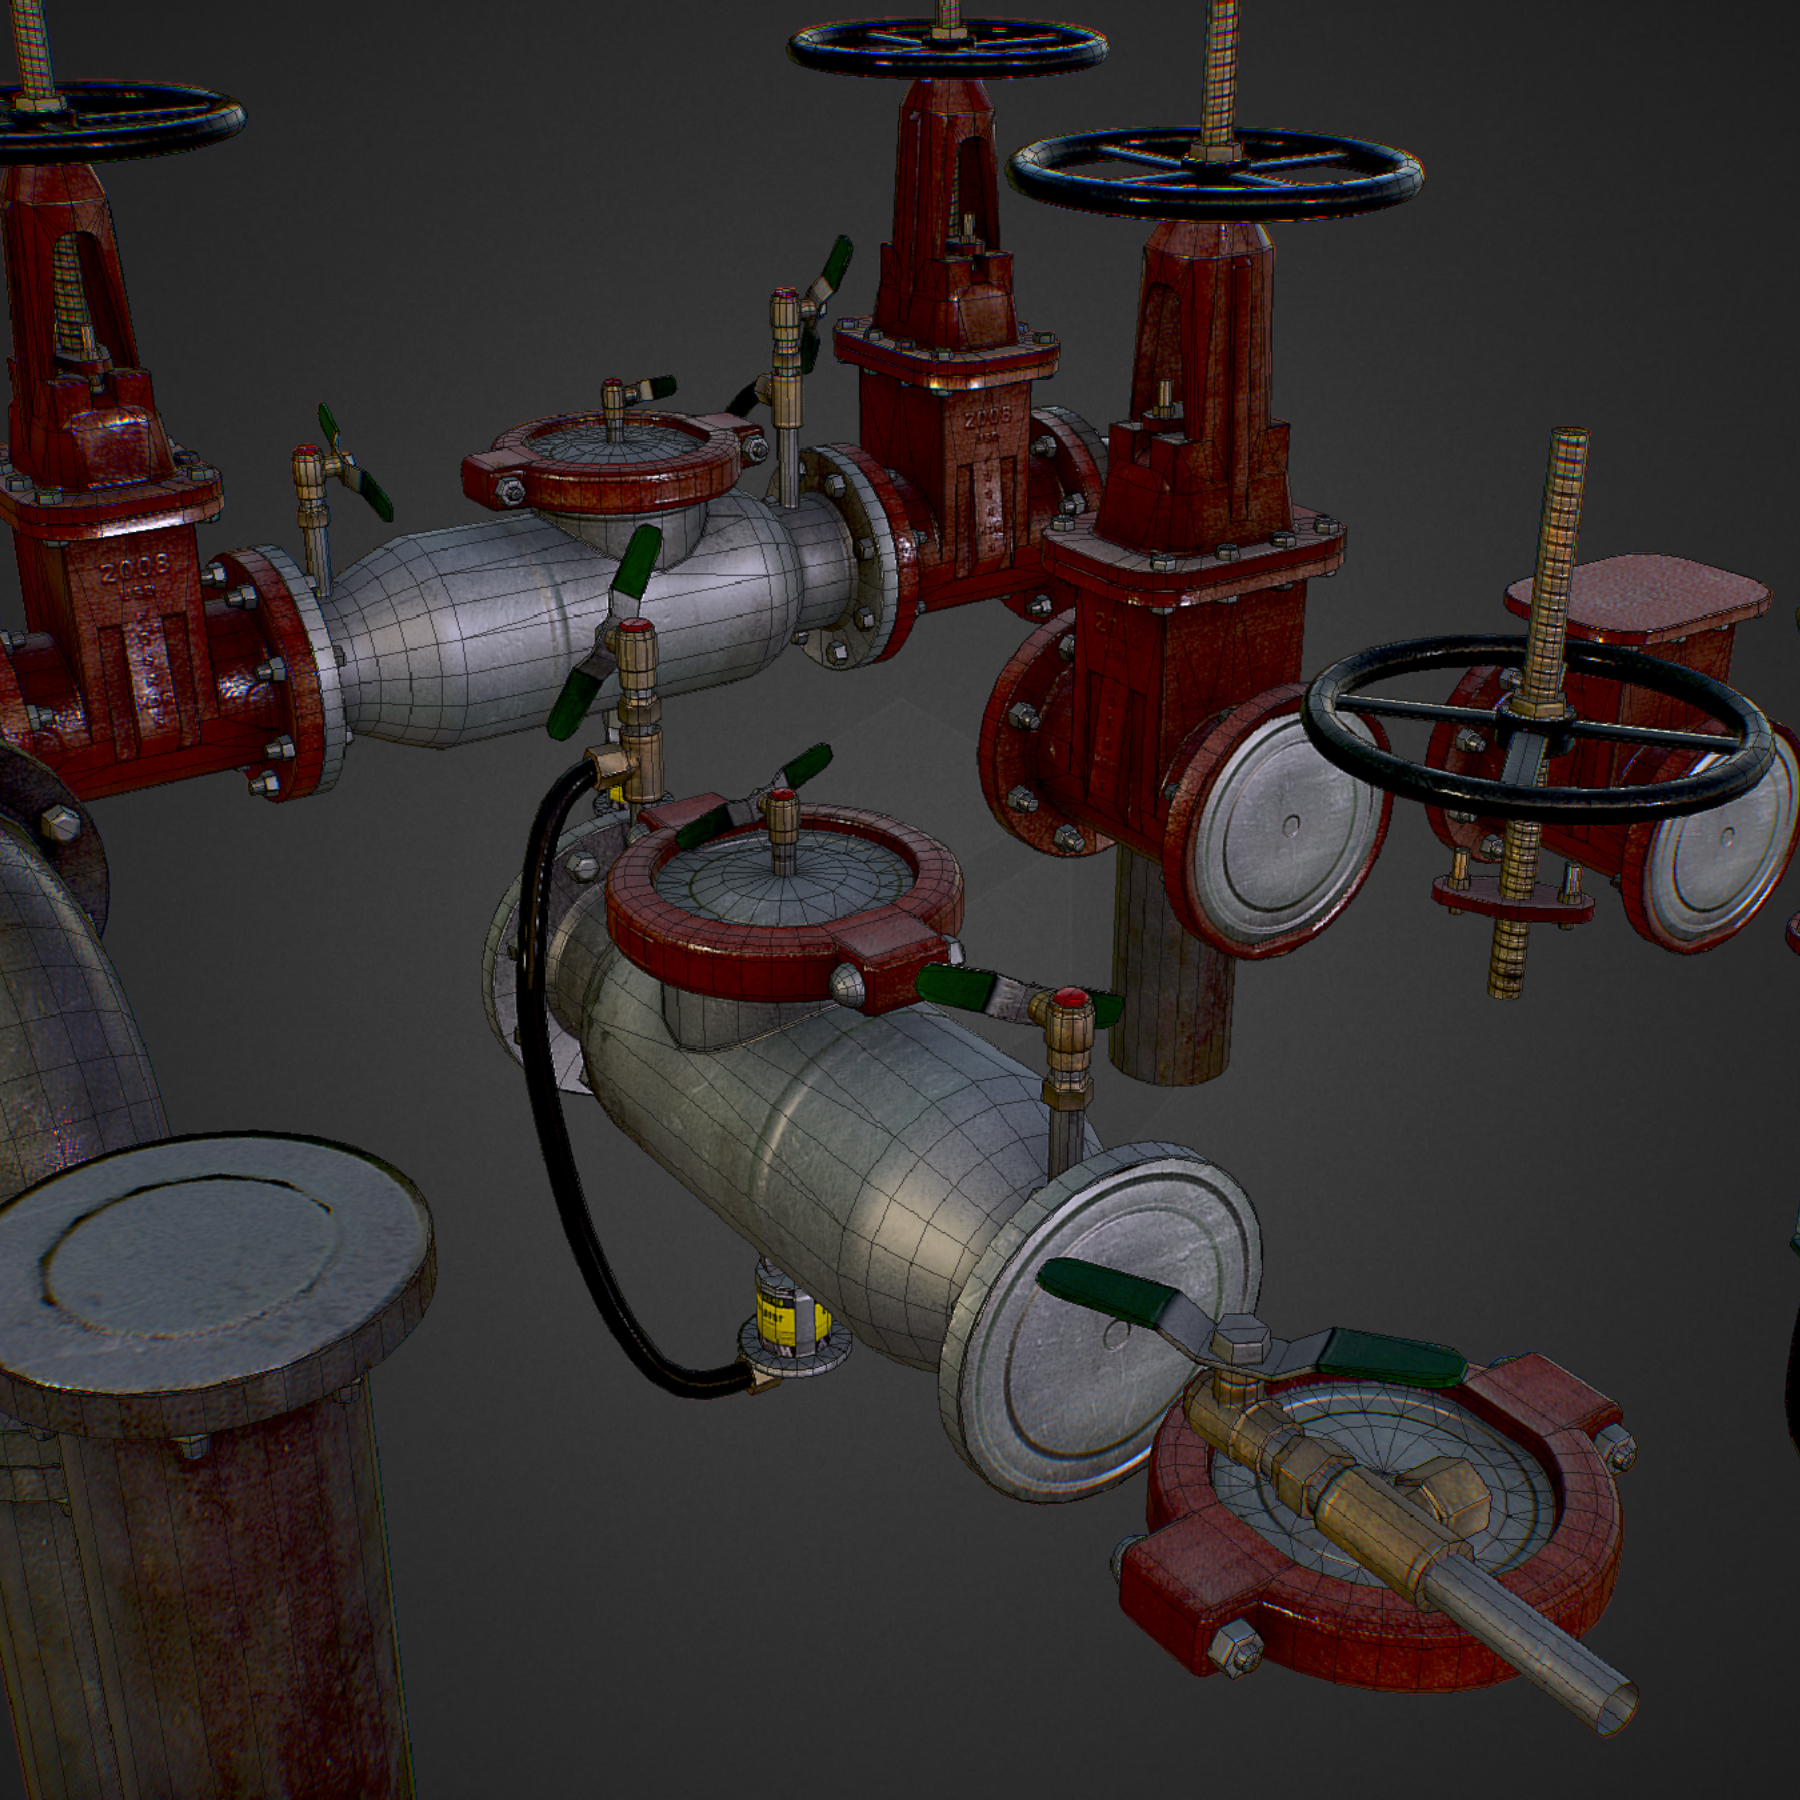 low poly game backflow water pipe constructor 3d model max  fbx ma mb tga targa icb vda vst pix obj 272482